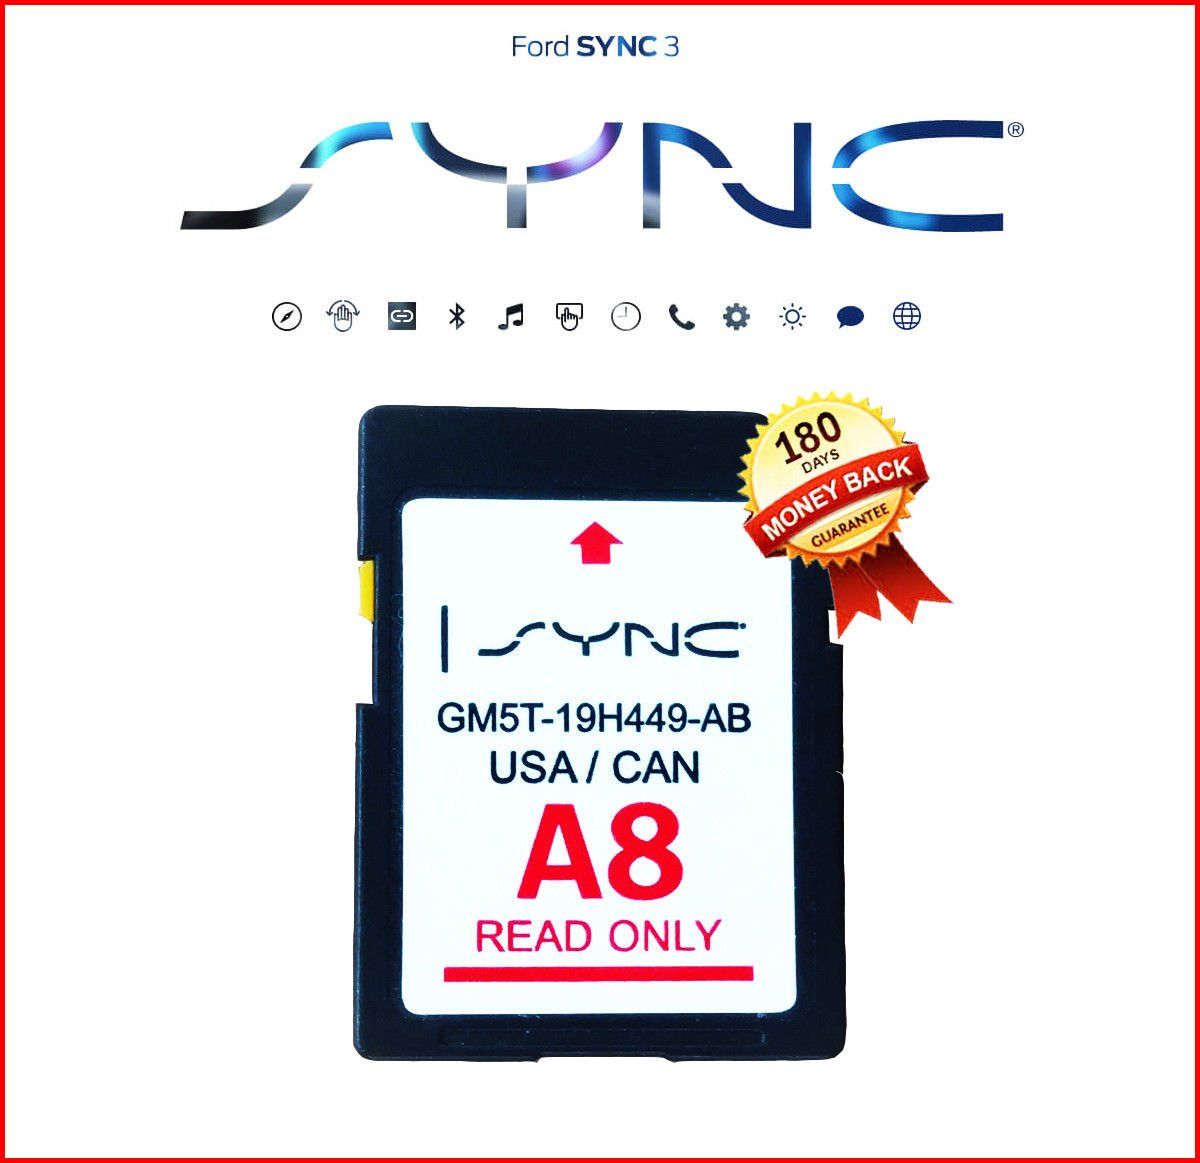 by Ford Navigation LATEST A8 2018 SD CARD SYNC FITS ALL FORD LINCOLN UPDATES A7